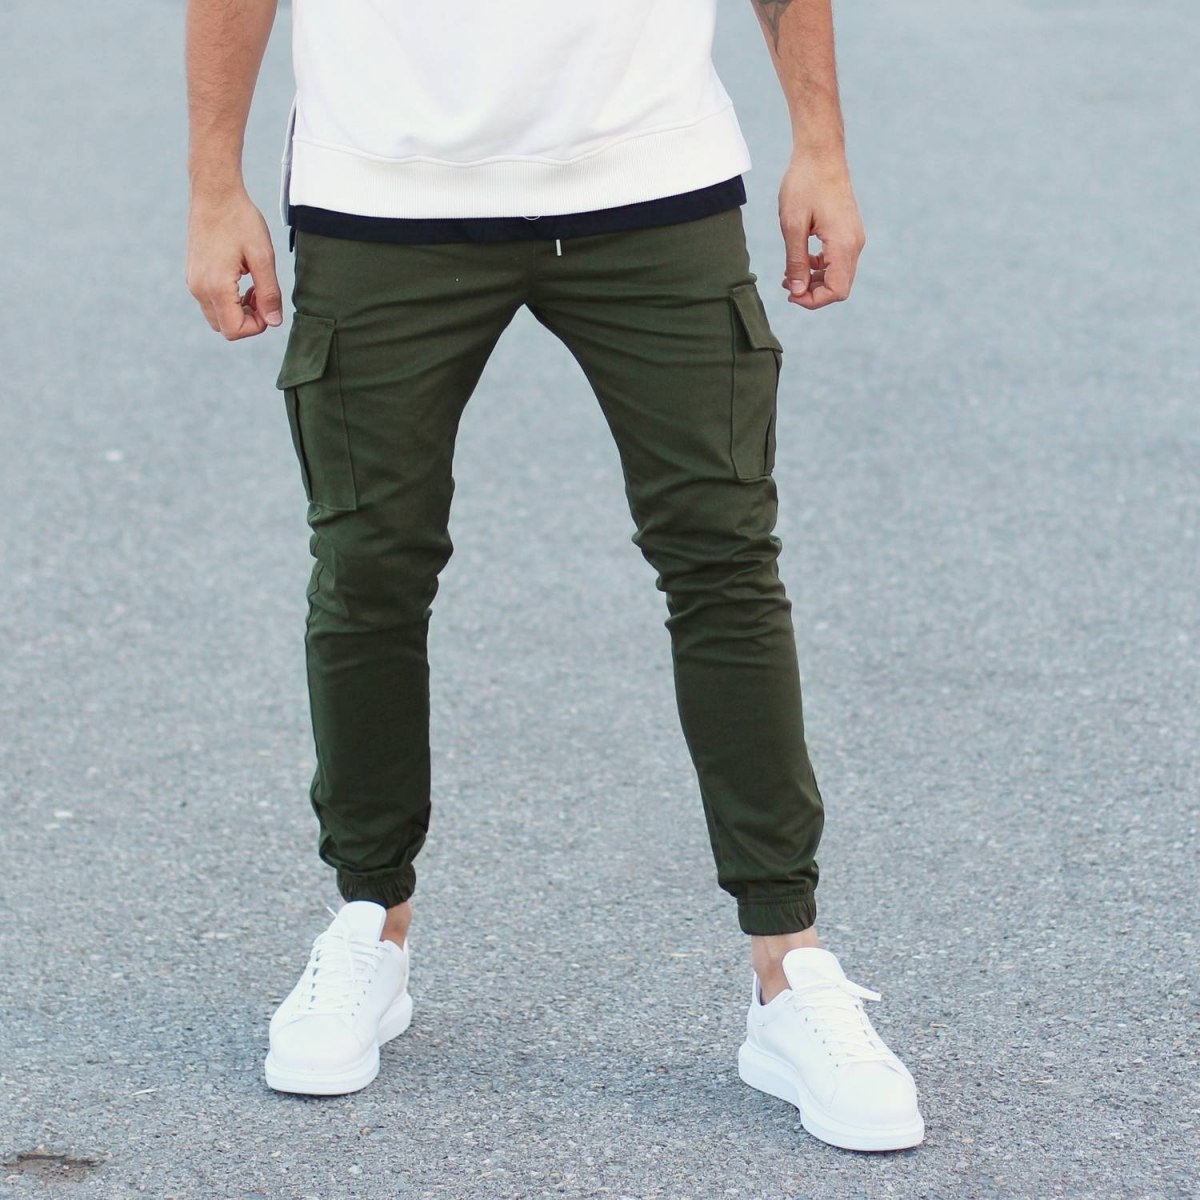 Casual Street Pants with Large Side-Pockets in Khaki Mv Premium Brand - 2